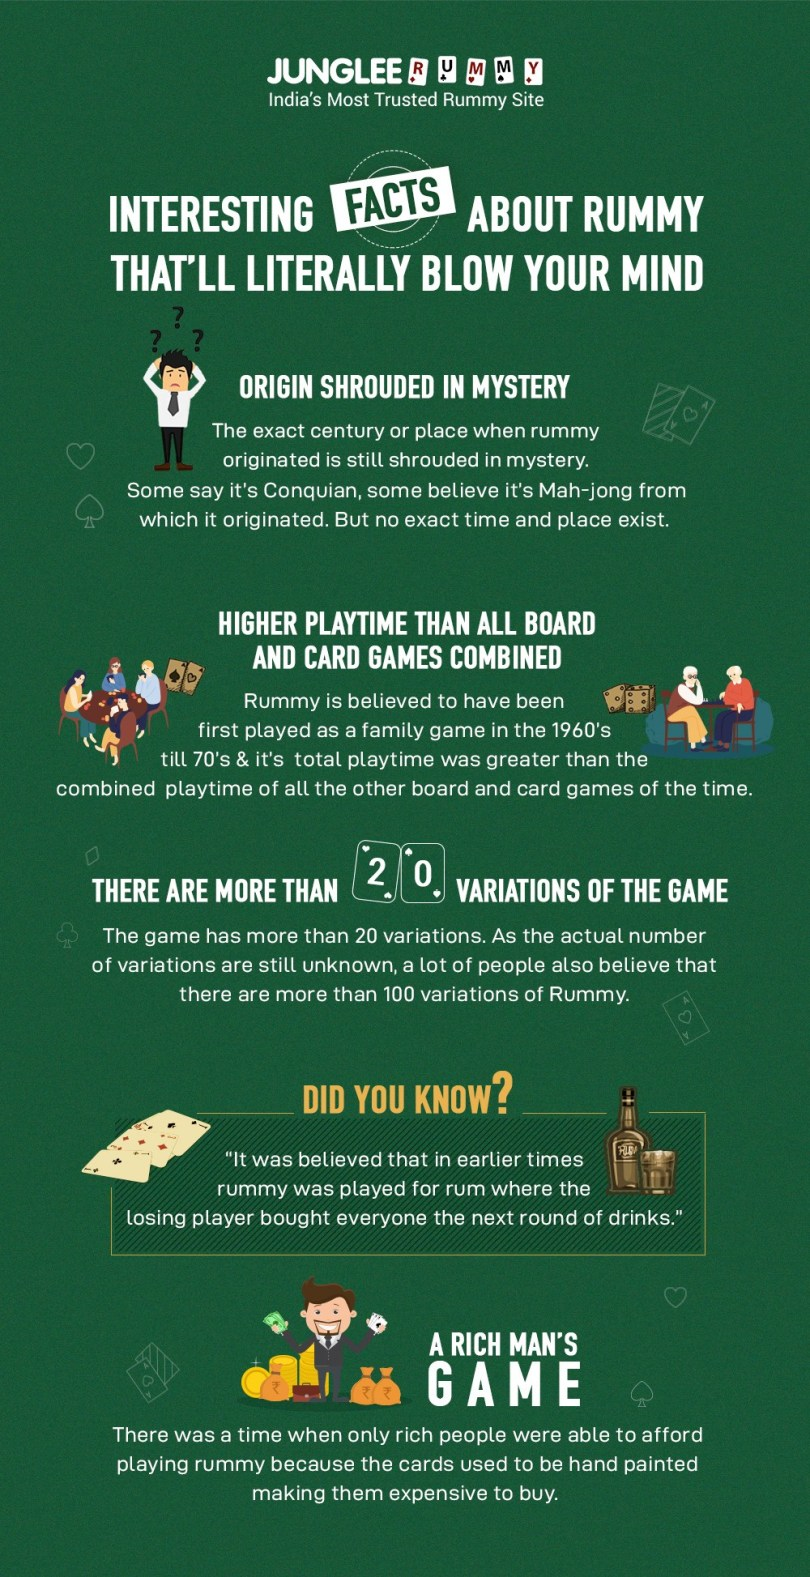 5 Things You Did Not Know About Rummy - Infographic